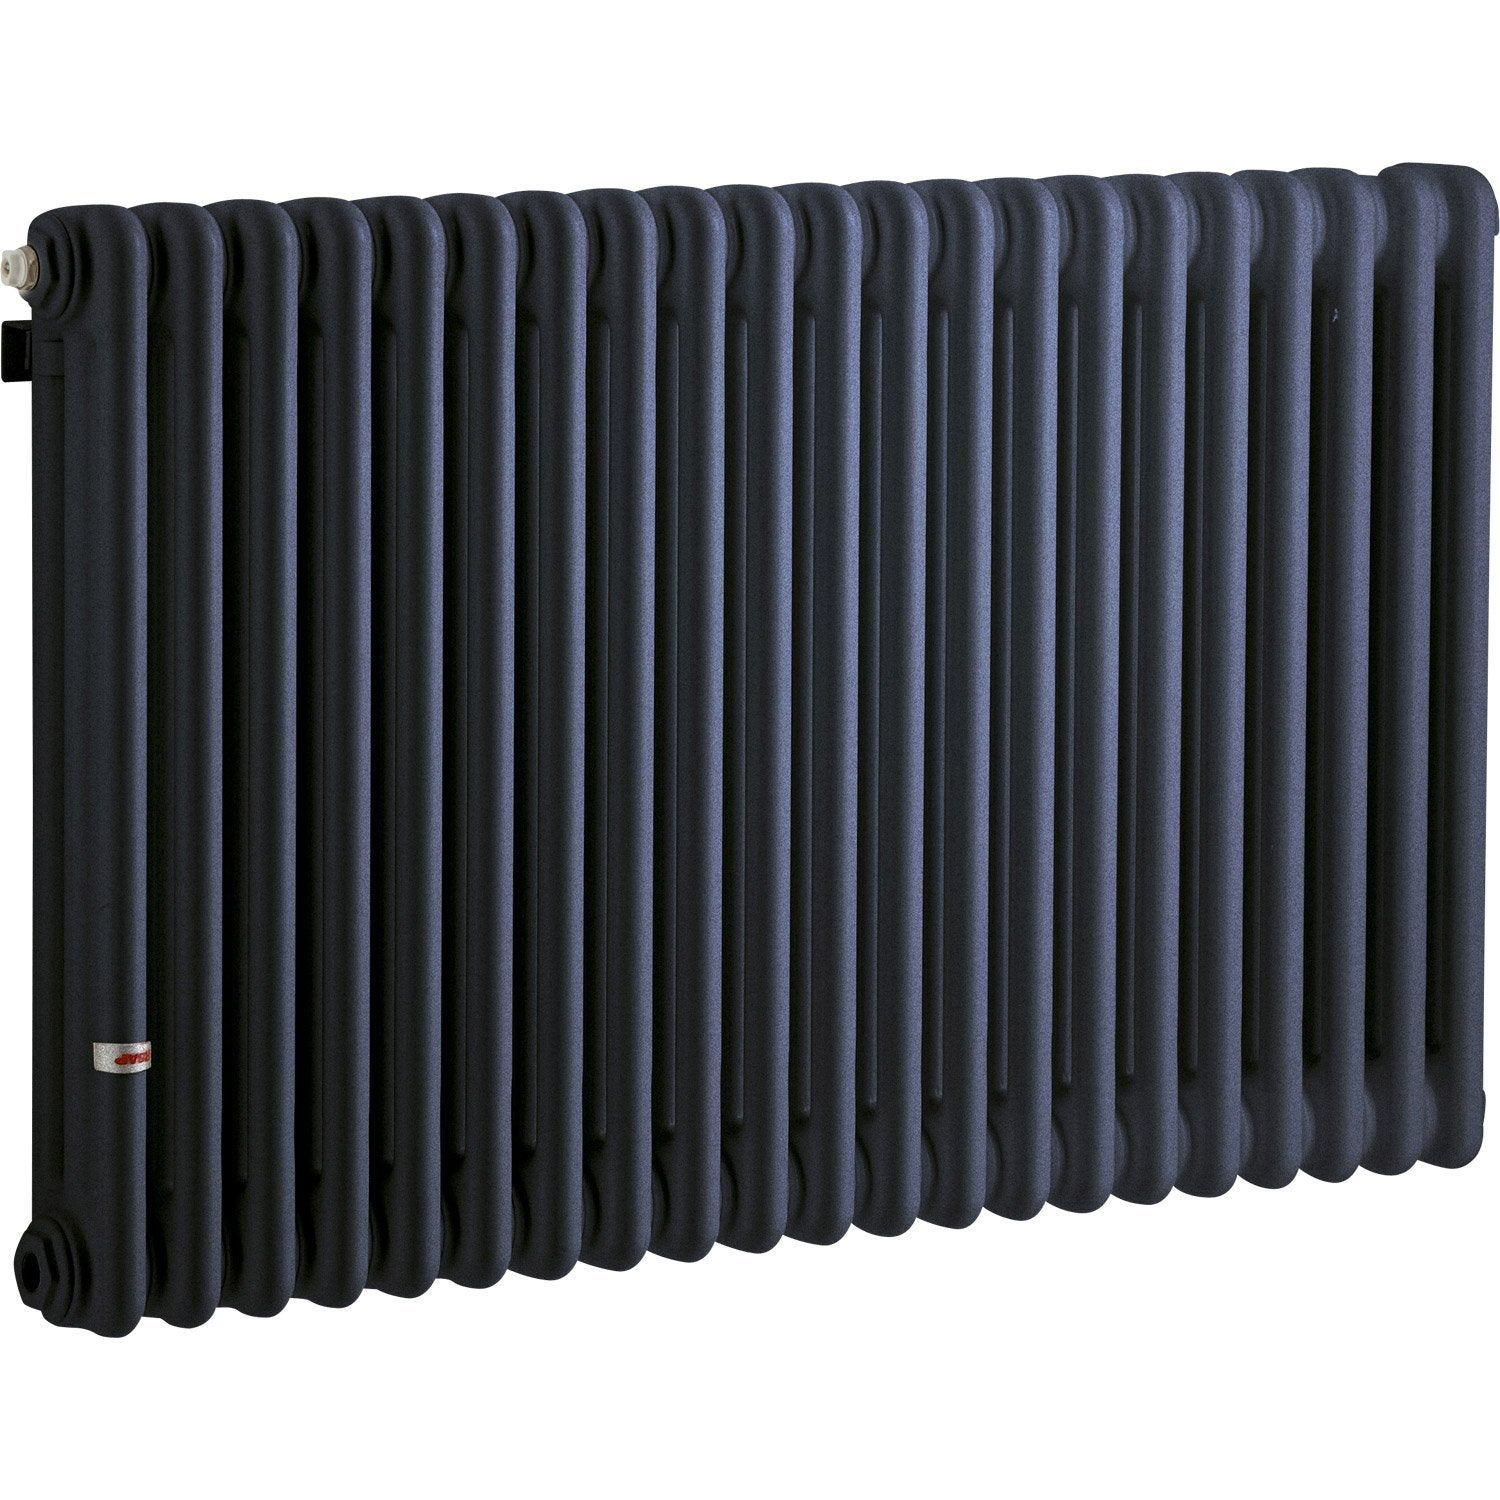 radiateur chauffage central irsap tesi cm 1858 w leroy merlin. Black Bedroom Furniture Sets. Home Design Ideas